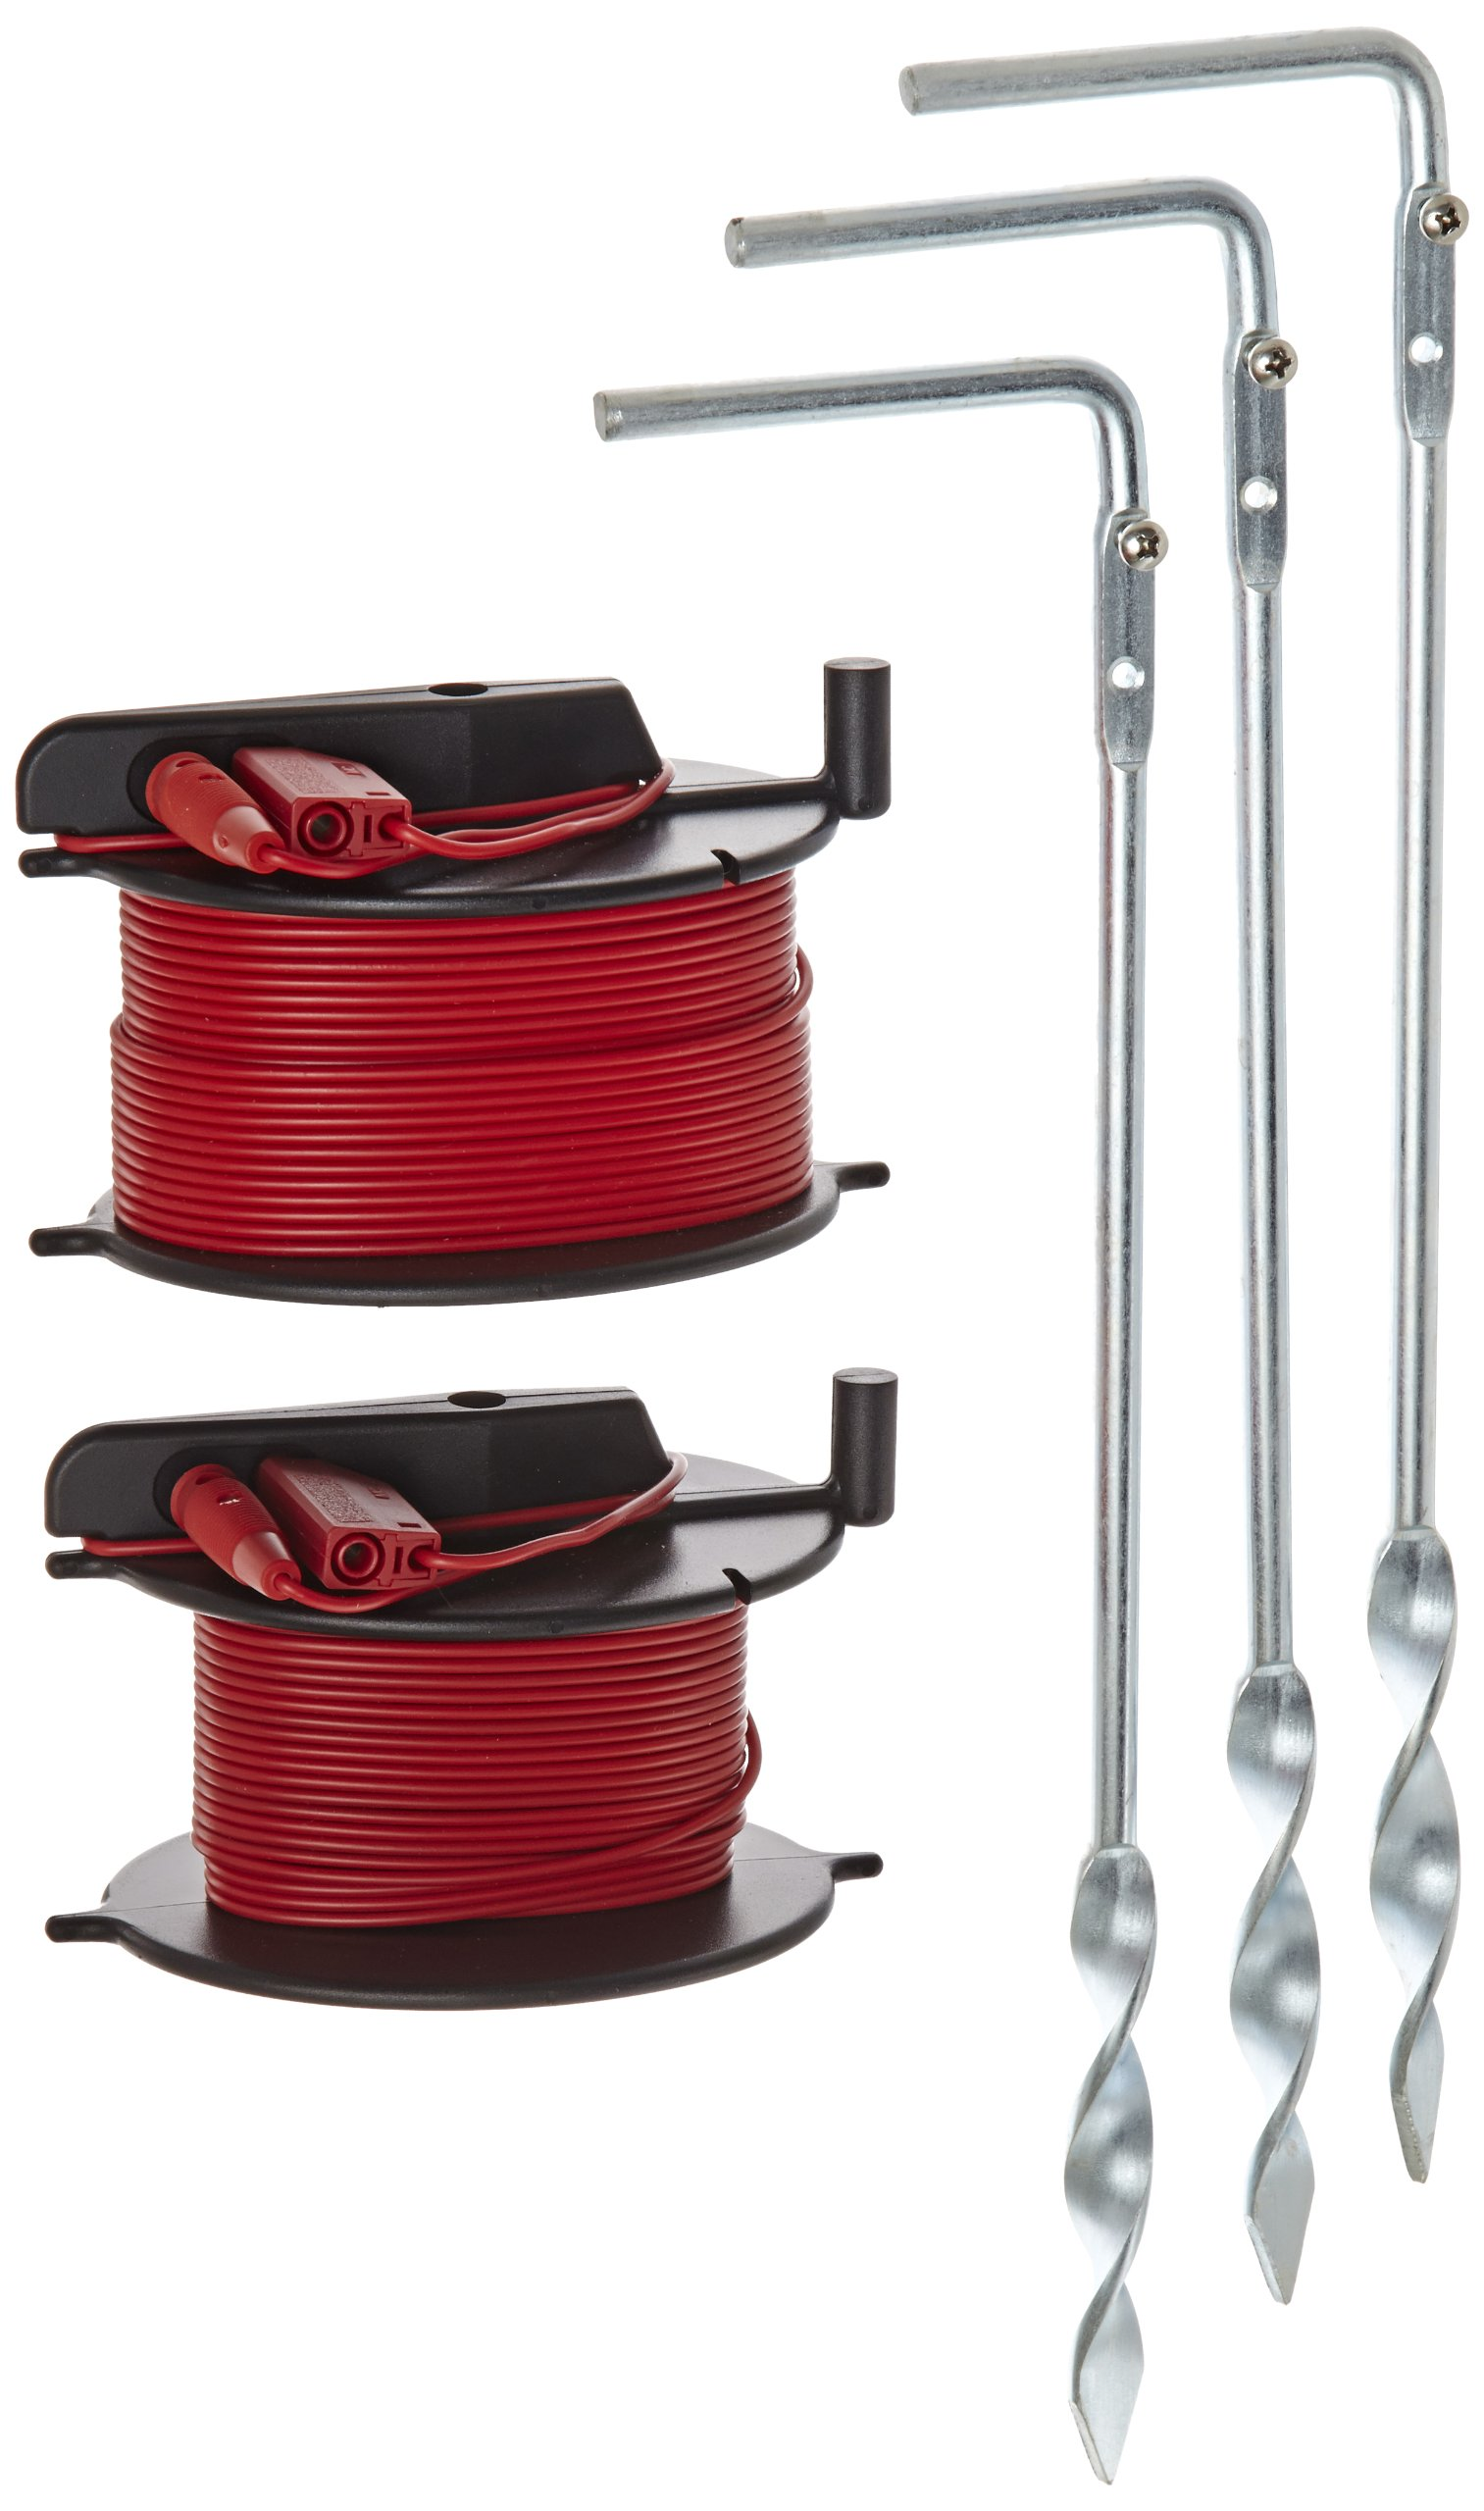 Fluke ES-162P3 5 Piece Stake Kit for Fluke 1623 and 1625 Earth Ground Testers, 3-Poles